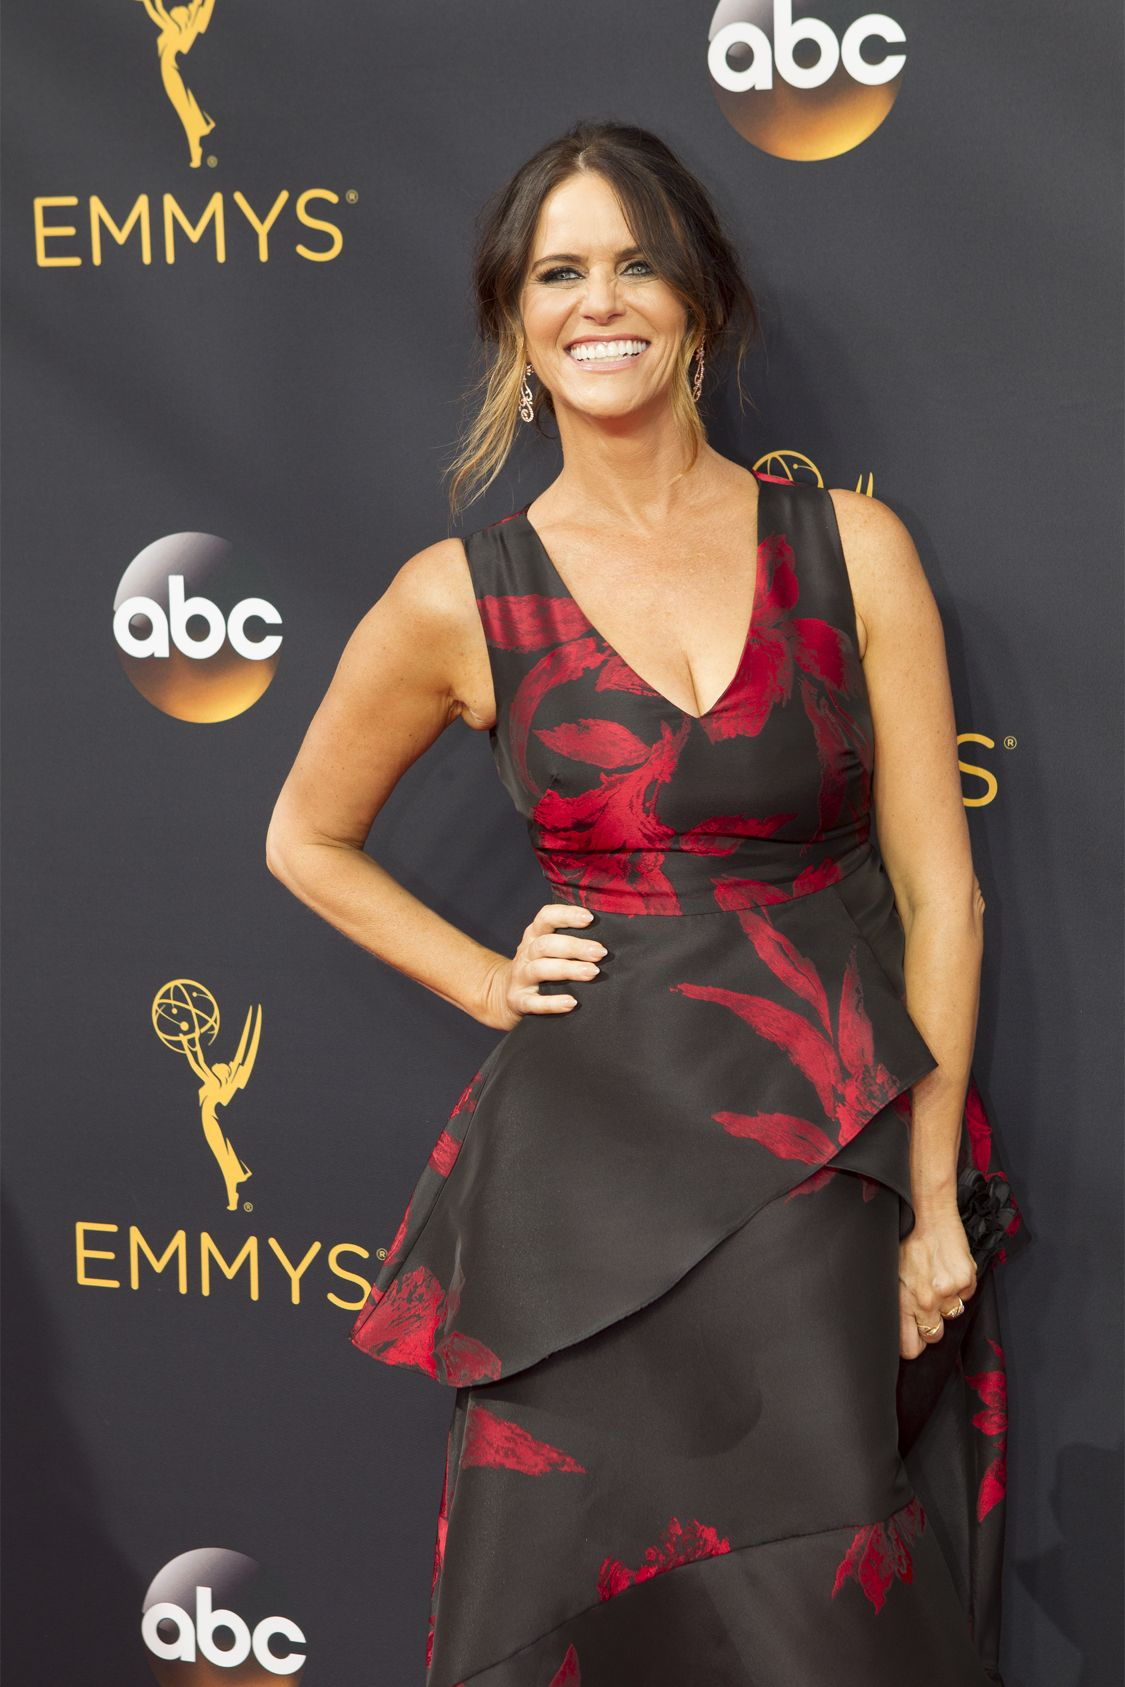 """THE 68TH EMMY(r) AWARDS - """"The 68th Emmy Awards"""" broadcasts live from The Microsoft Theater in Los Angeles, Sunday, September 18 (7:00-11:00 p.m. EDT/4:00-8:00 p.m. PDT), on ABC and is hosted by Jimmy Kimmel. (ABC/Rick Rowell) AMY LANDECKER"""